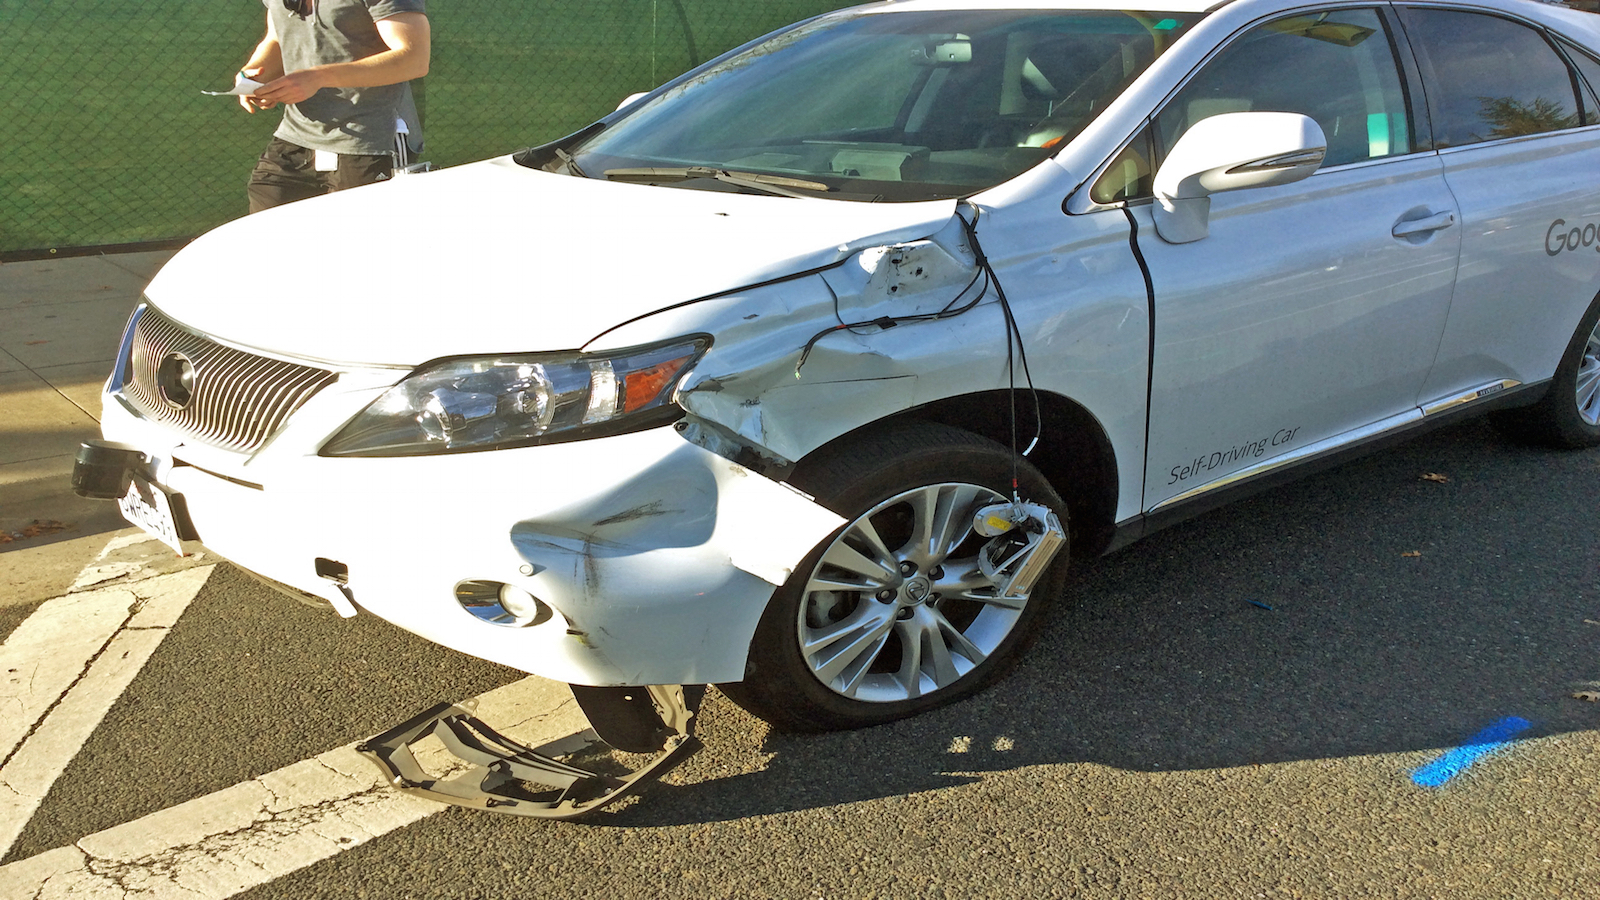 This Feb. 14, 2016, photo provided by the Santa Clara Valley Transportation Authority shows damage to a self-driving Lexus SUV, operated by Google, that collided with a public bus in Mountain View, Calif. Cameras aboard the bus recorded the Lexus edging into the path of the bus and hitting its right side.